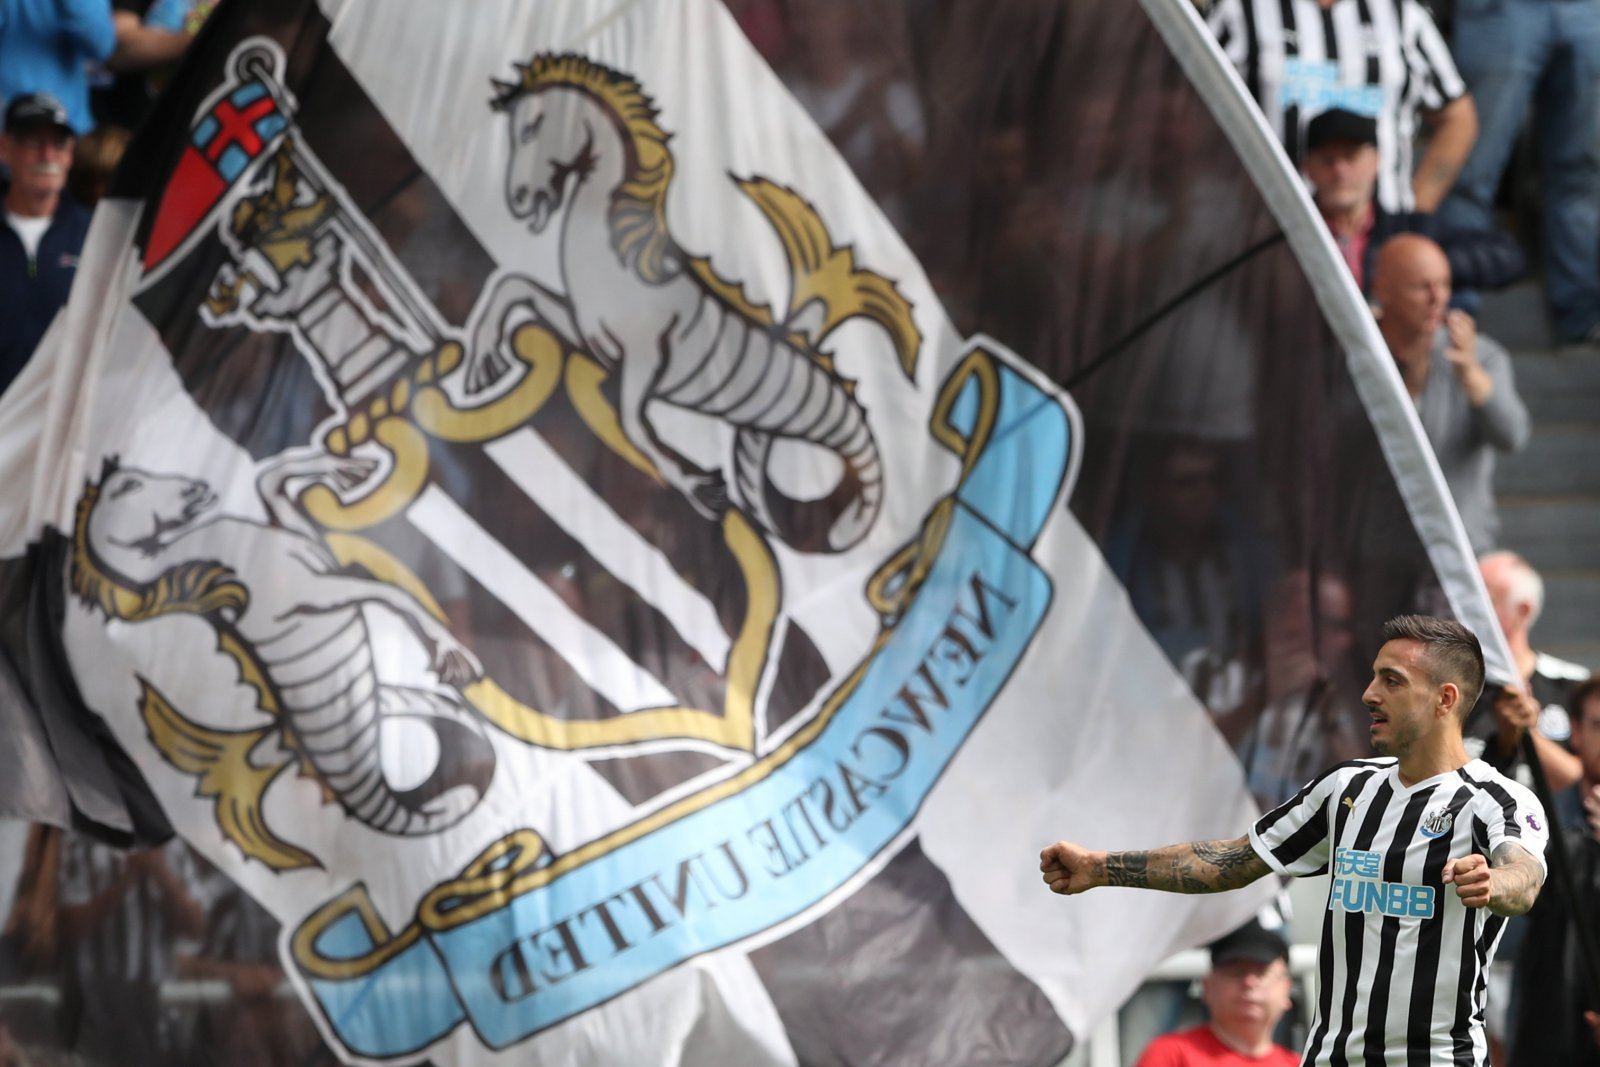 Joselu is gaining support amongst Newcastle United fans after strong season start